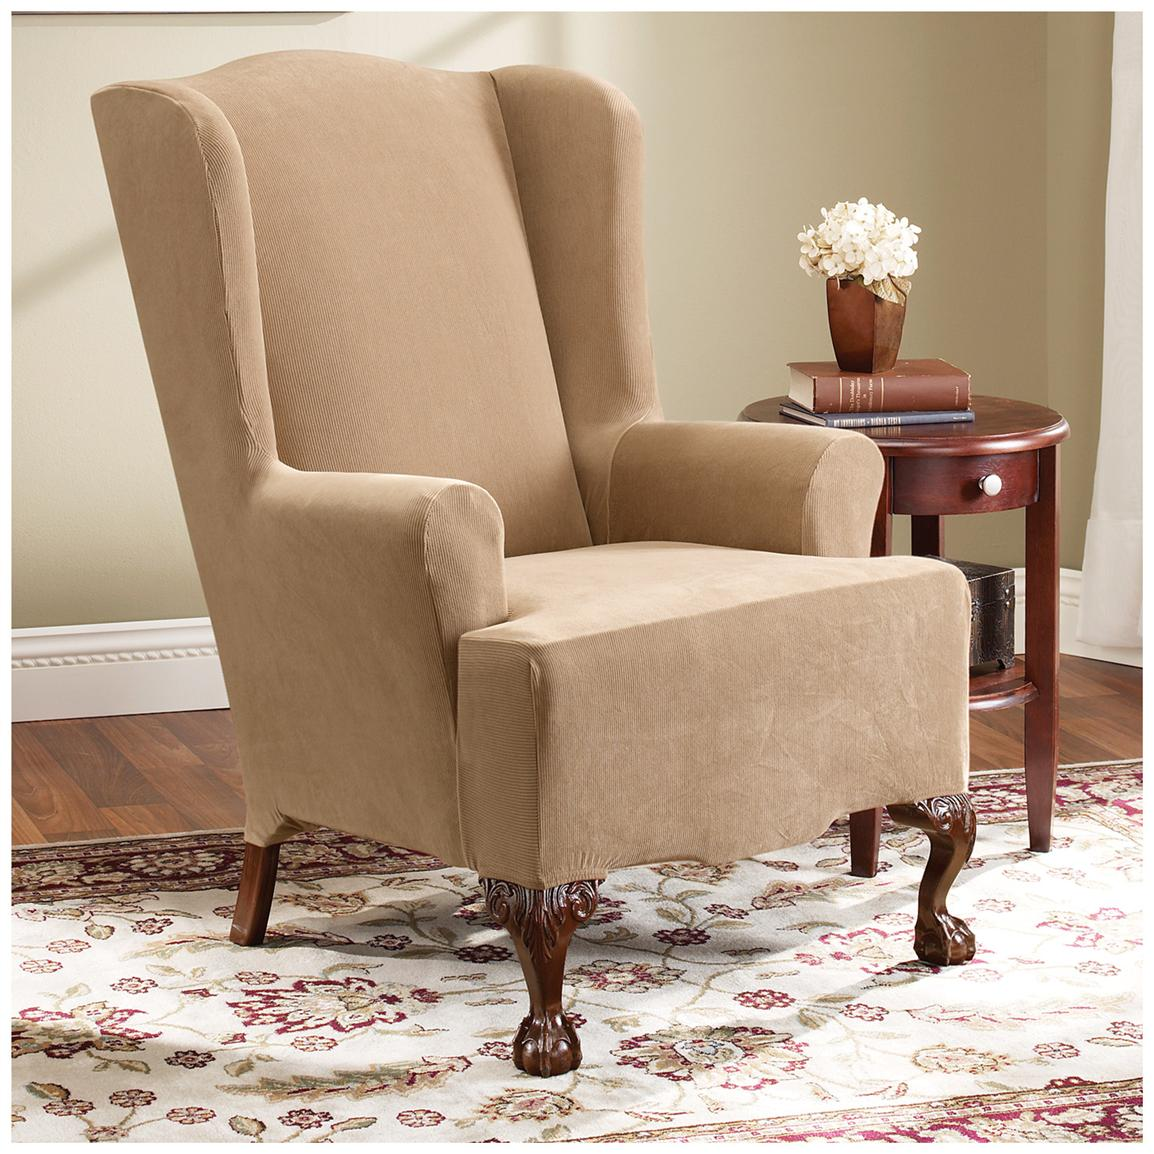 Adorable Cream Wingback Slipcover Sofa Design With Dark Brown Wooden Legs  And Wooden Side Table On